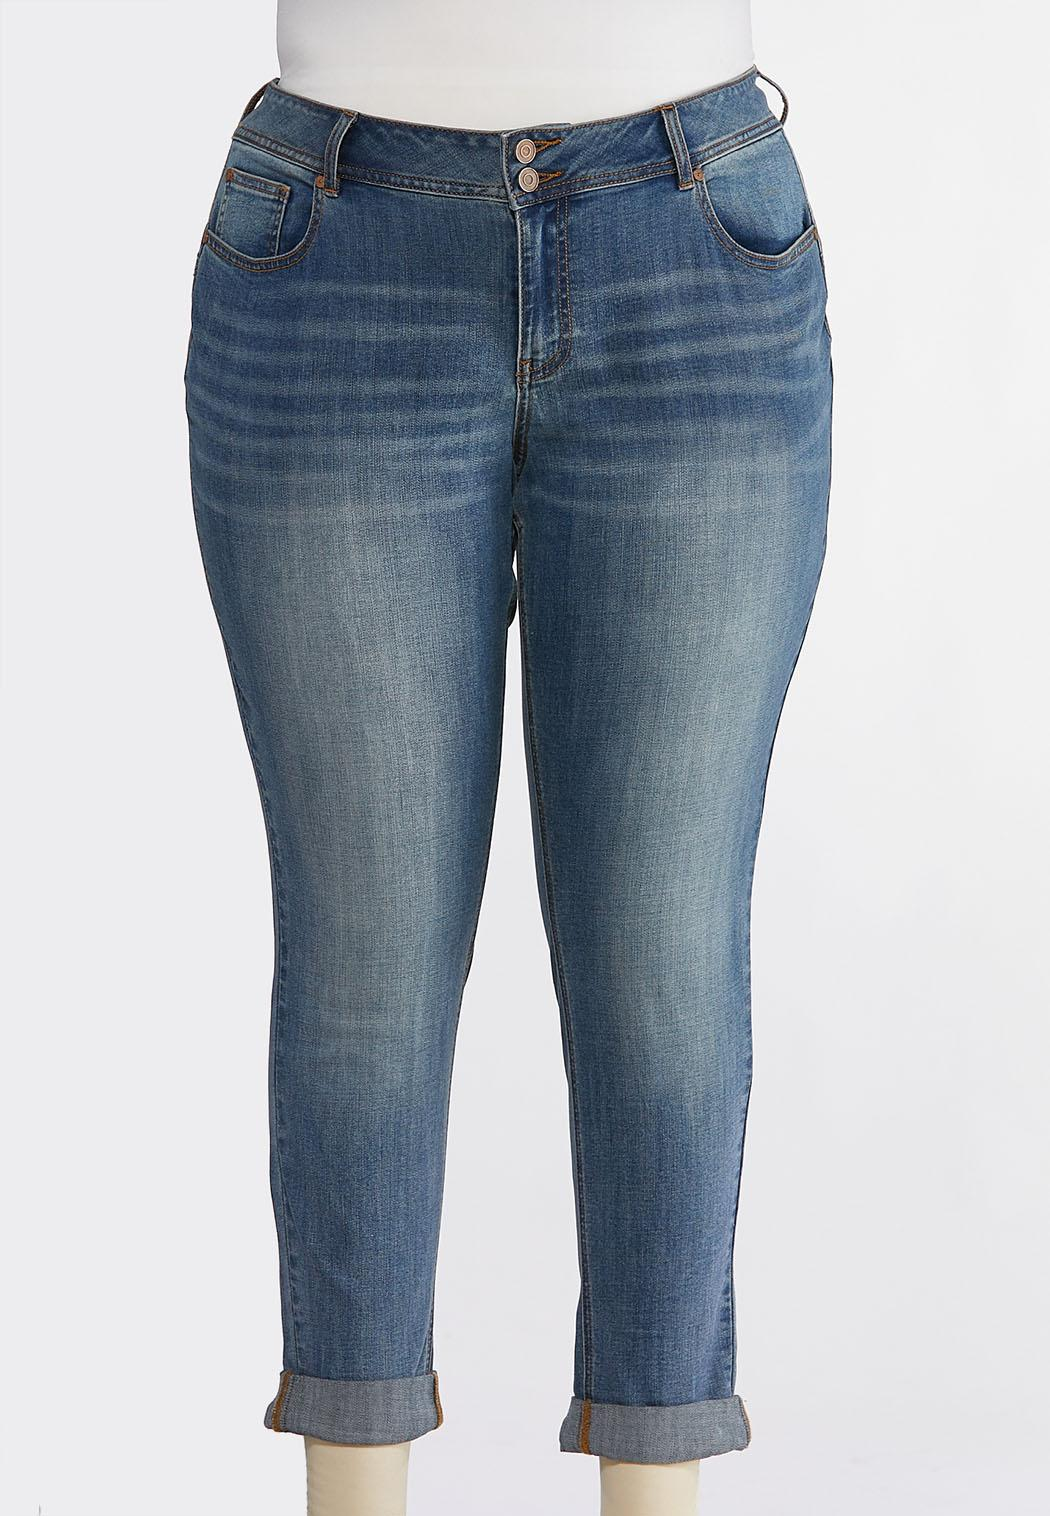 5450d4001f1 Plus Size Skinny Ankle Jeans Ankle Pants Cato Fashions